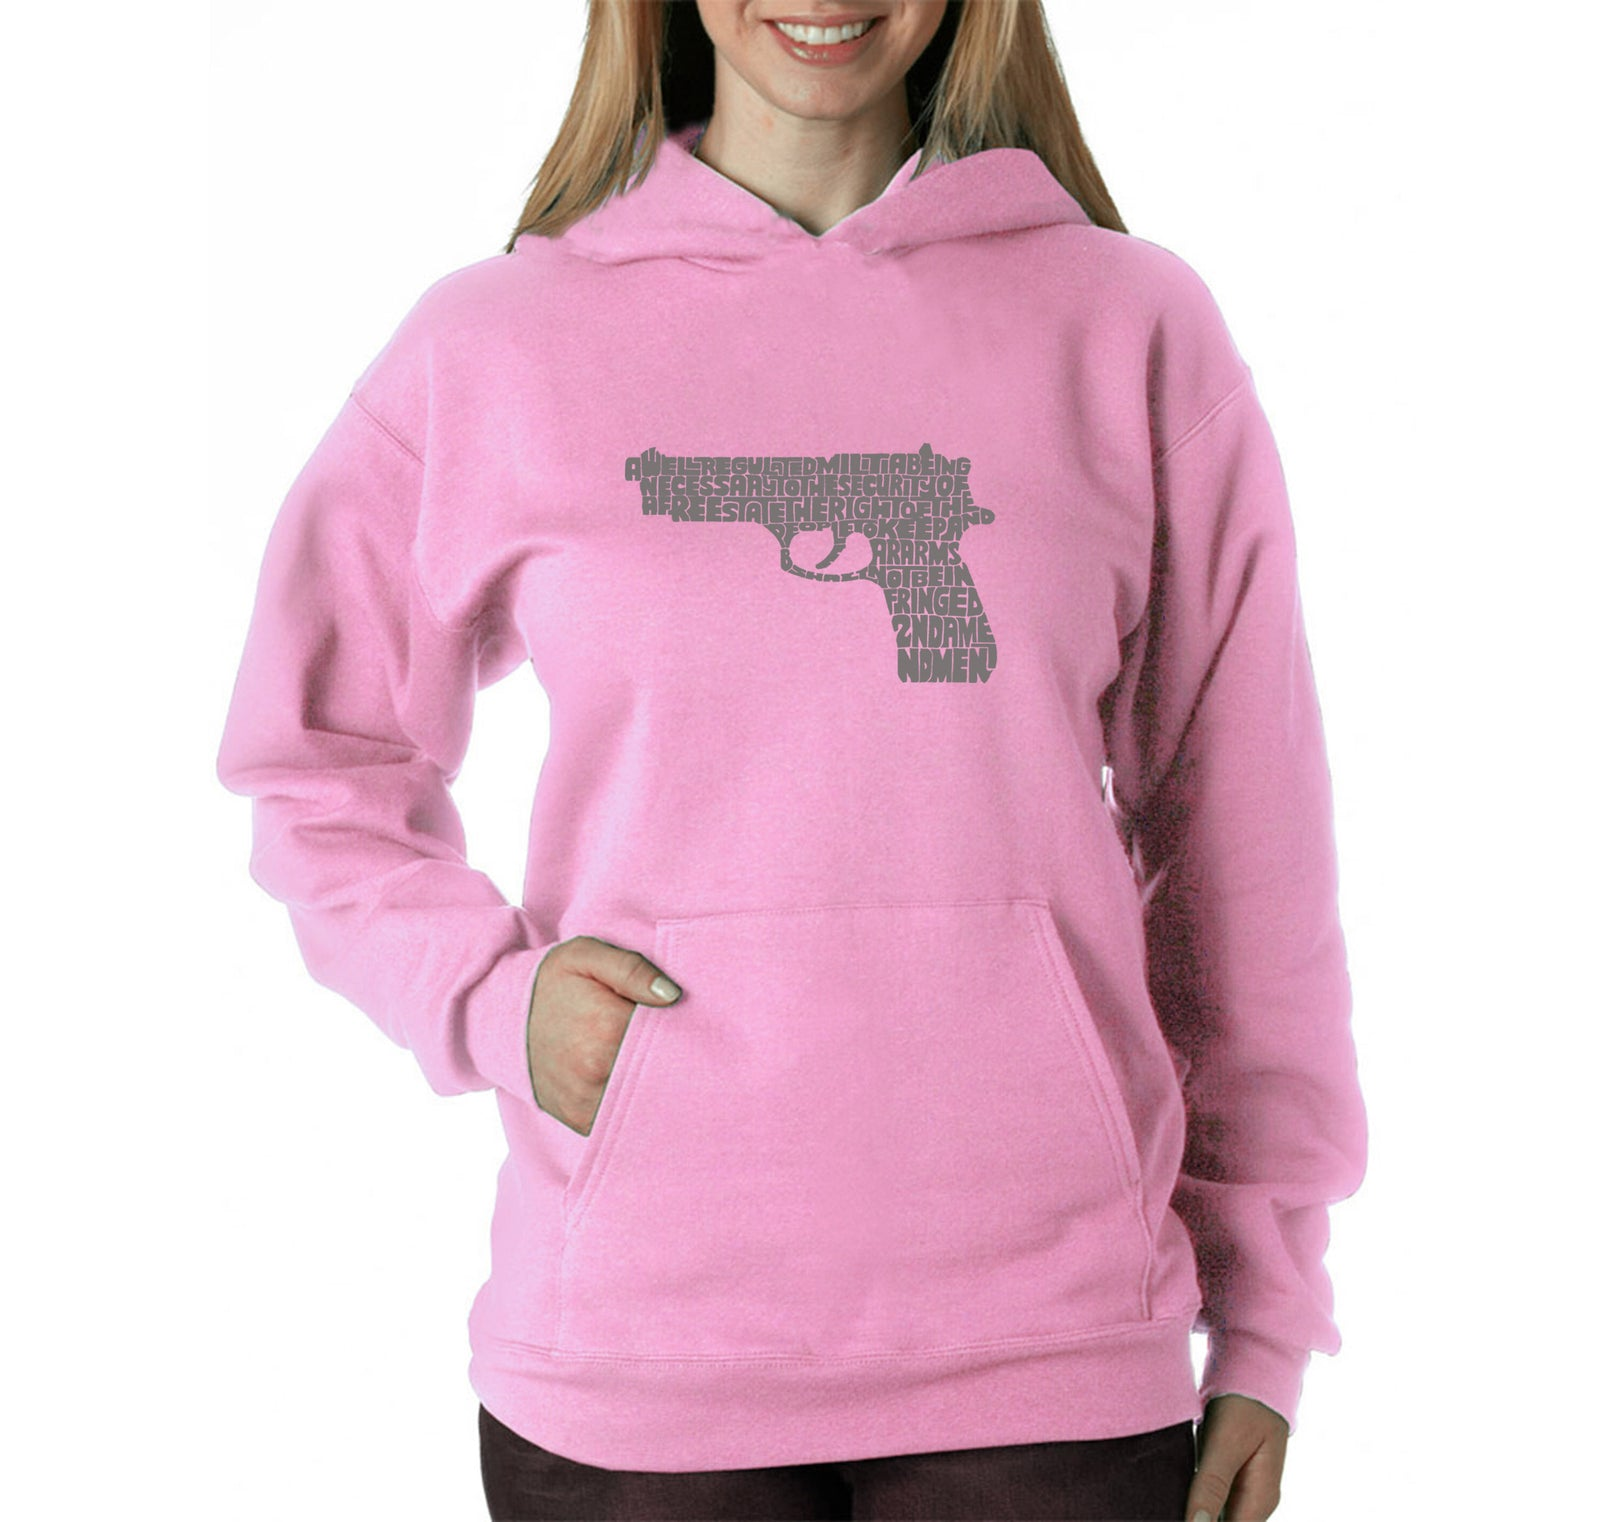 Women's Hooded Sweatshirt -RIGHT TO BEAR ARMS